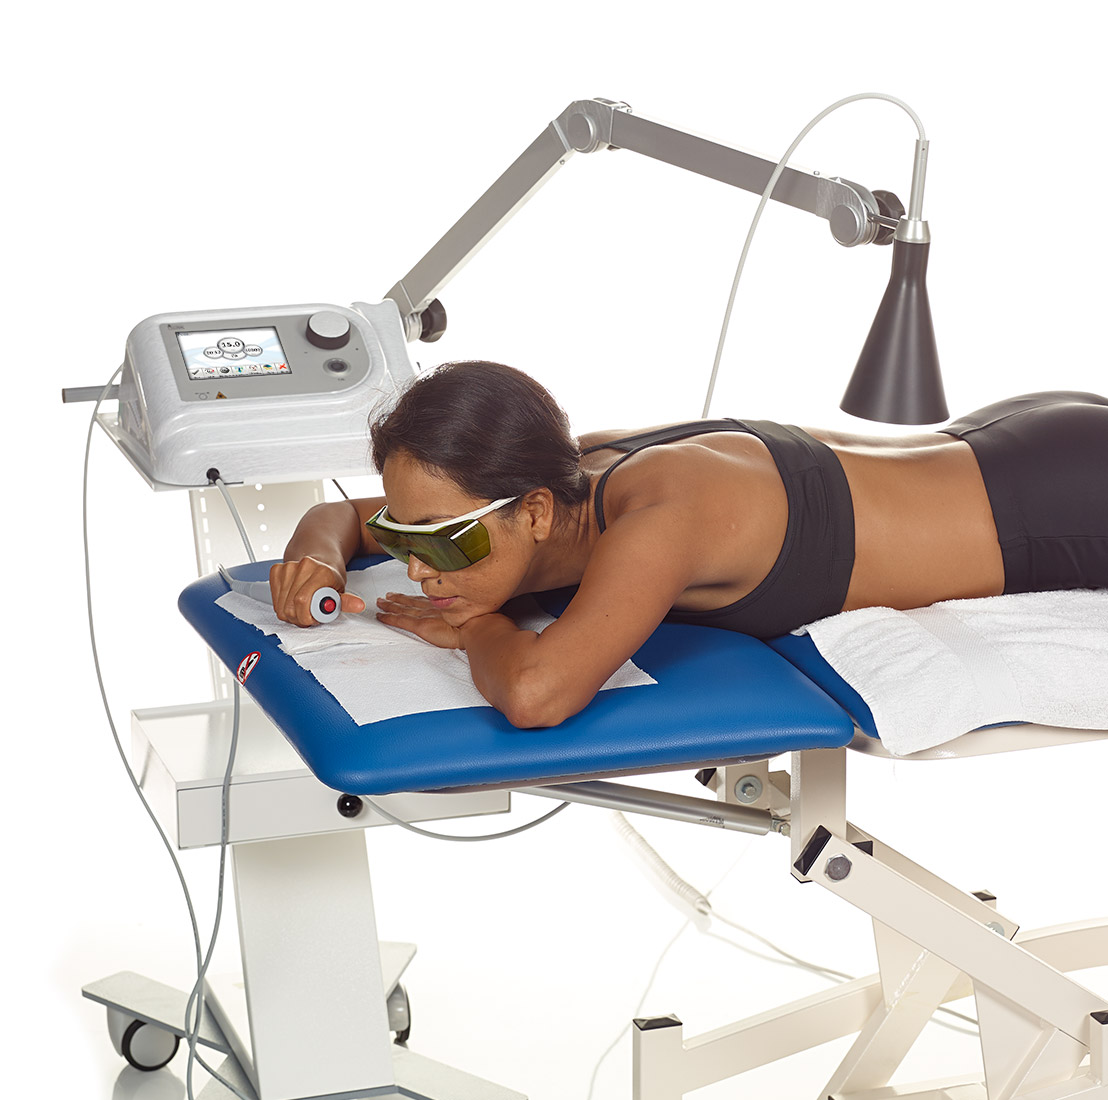 iLux laserterapia: ScanX mode